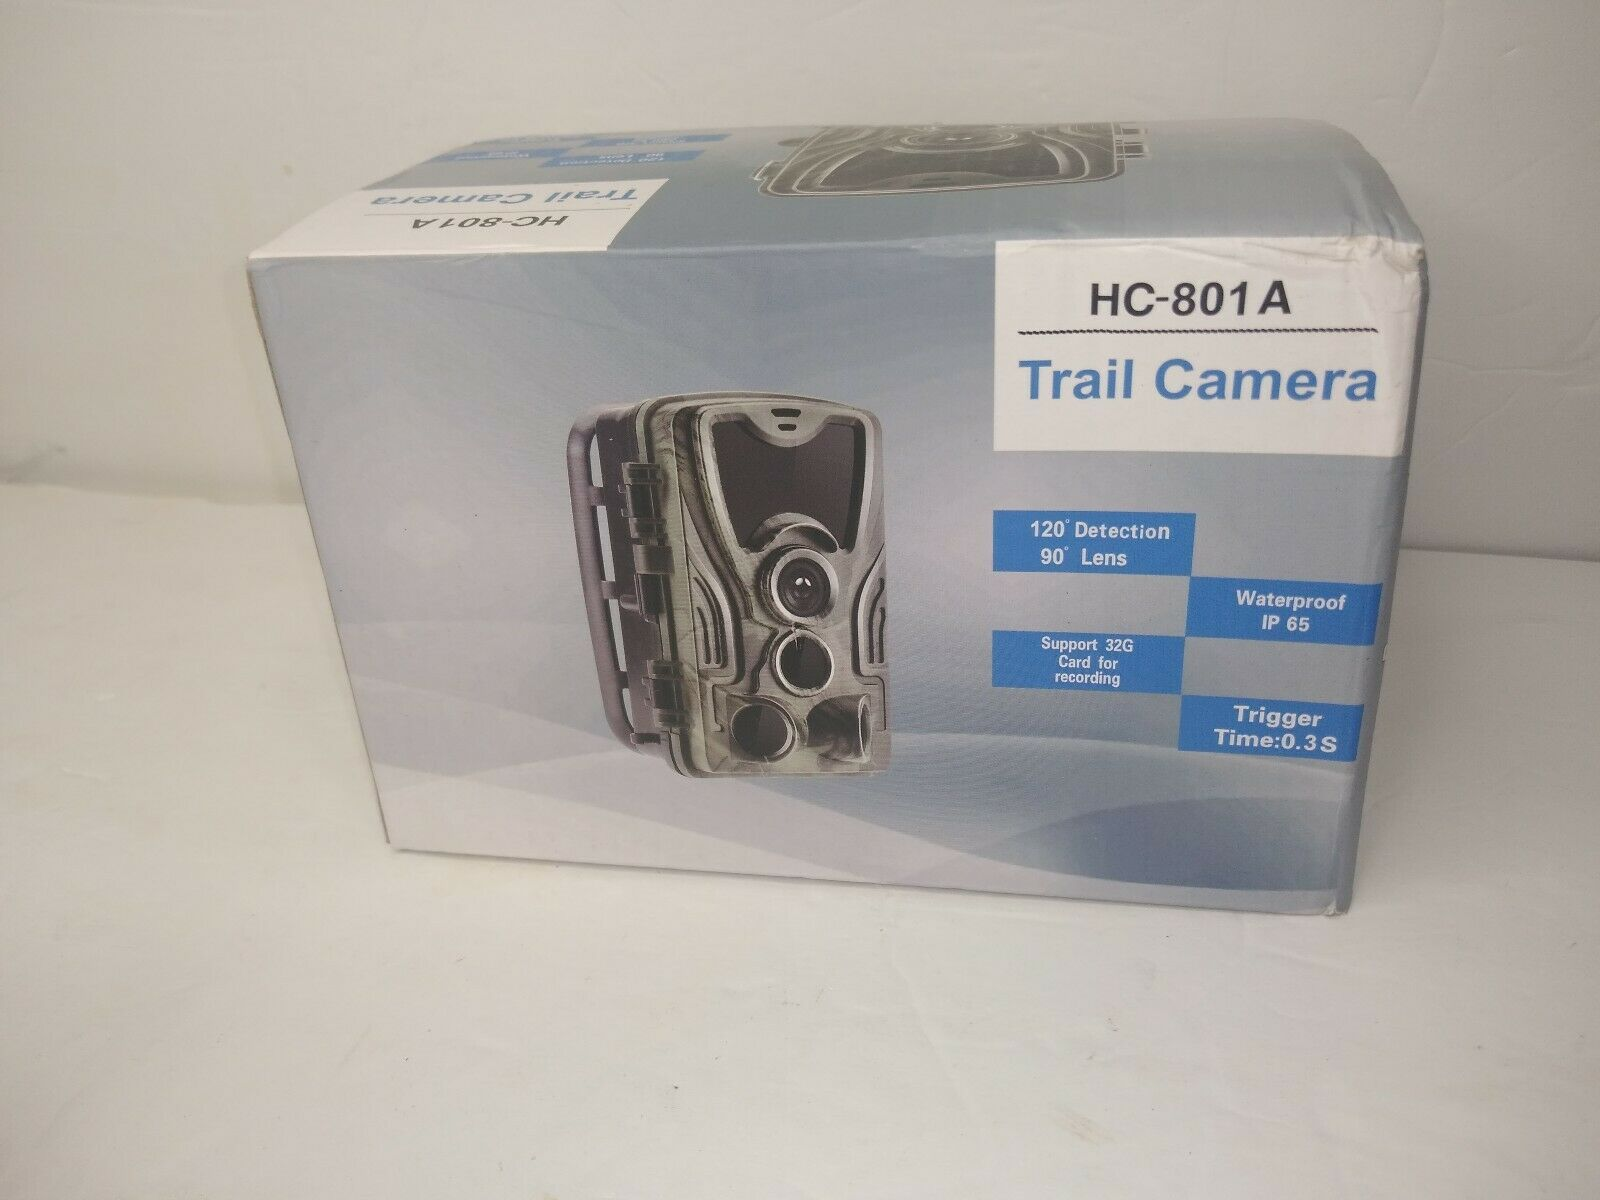 Game Trail Camera HC-801A - 120 Detection, Waterproof, Fast  trigger, 1080P - NEW  high quality & fast shipping